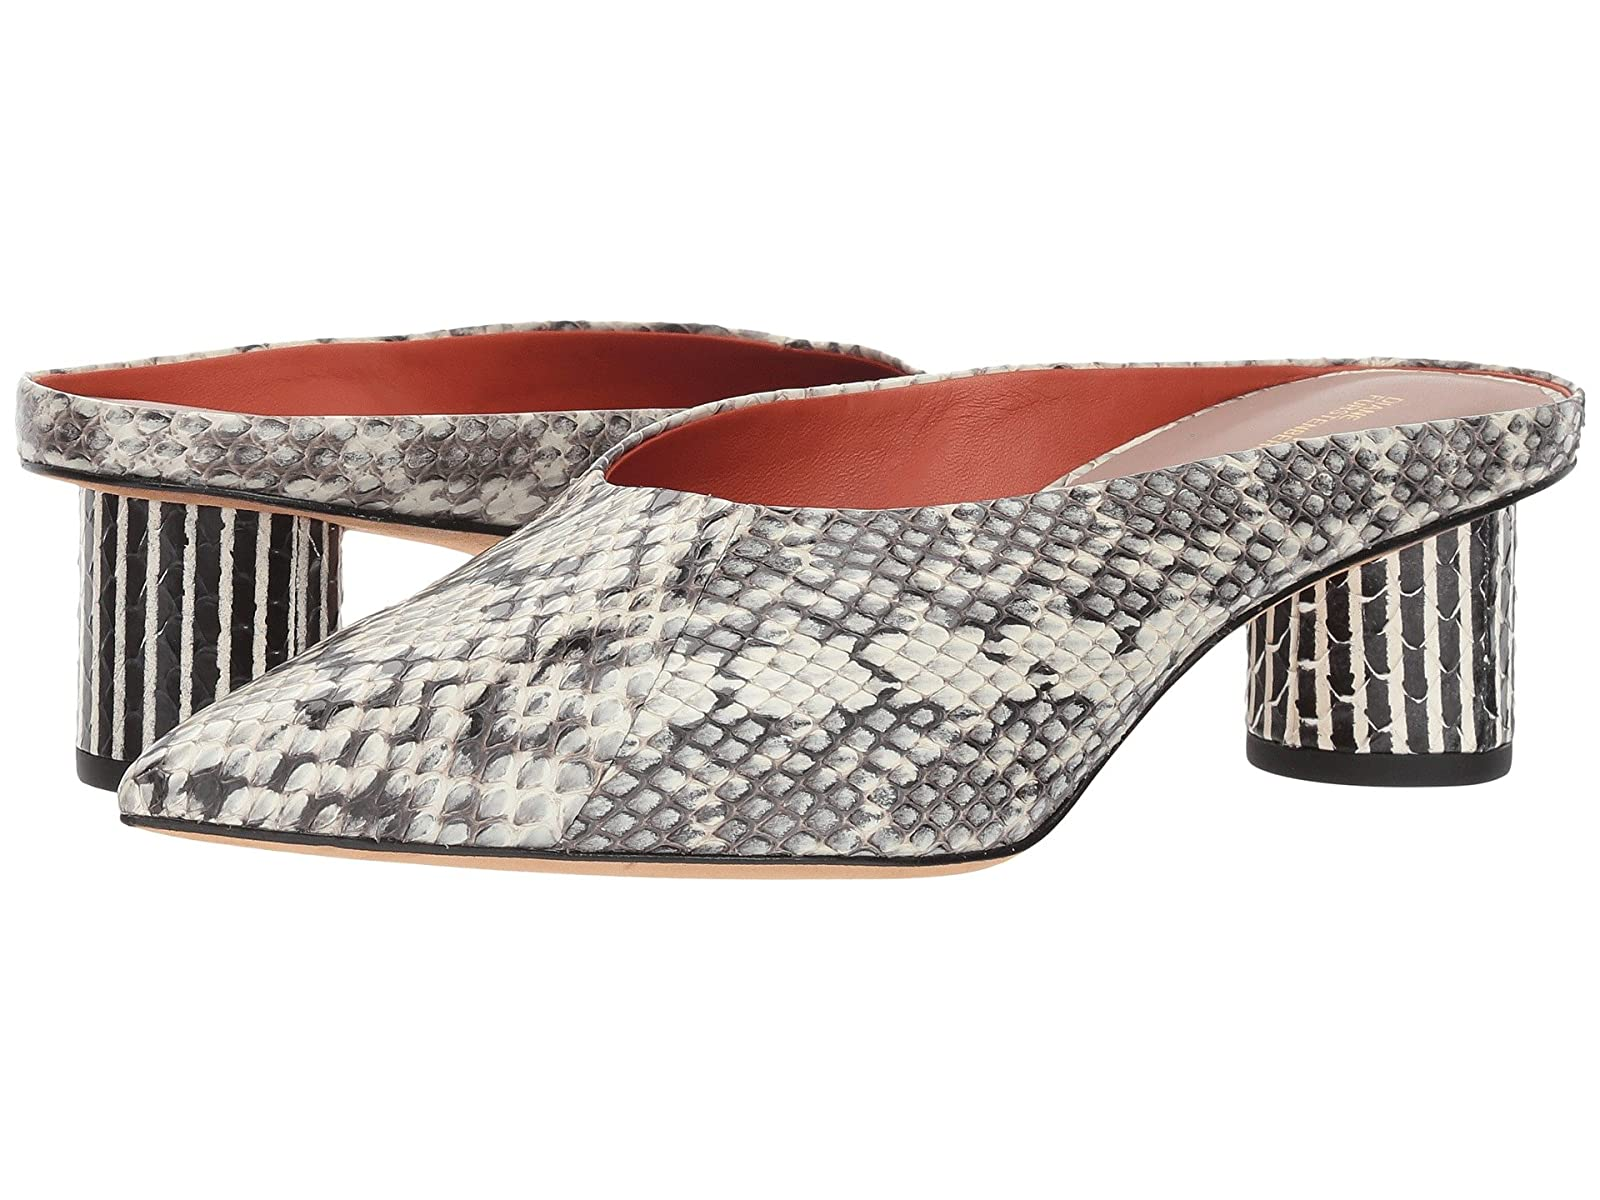 Diane von Furstenberg Nori-2Atmospheric grades have affordable shoes